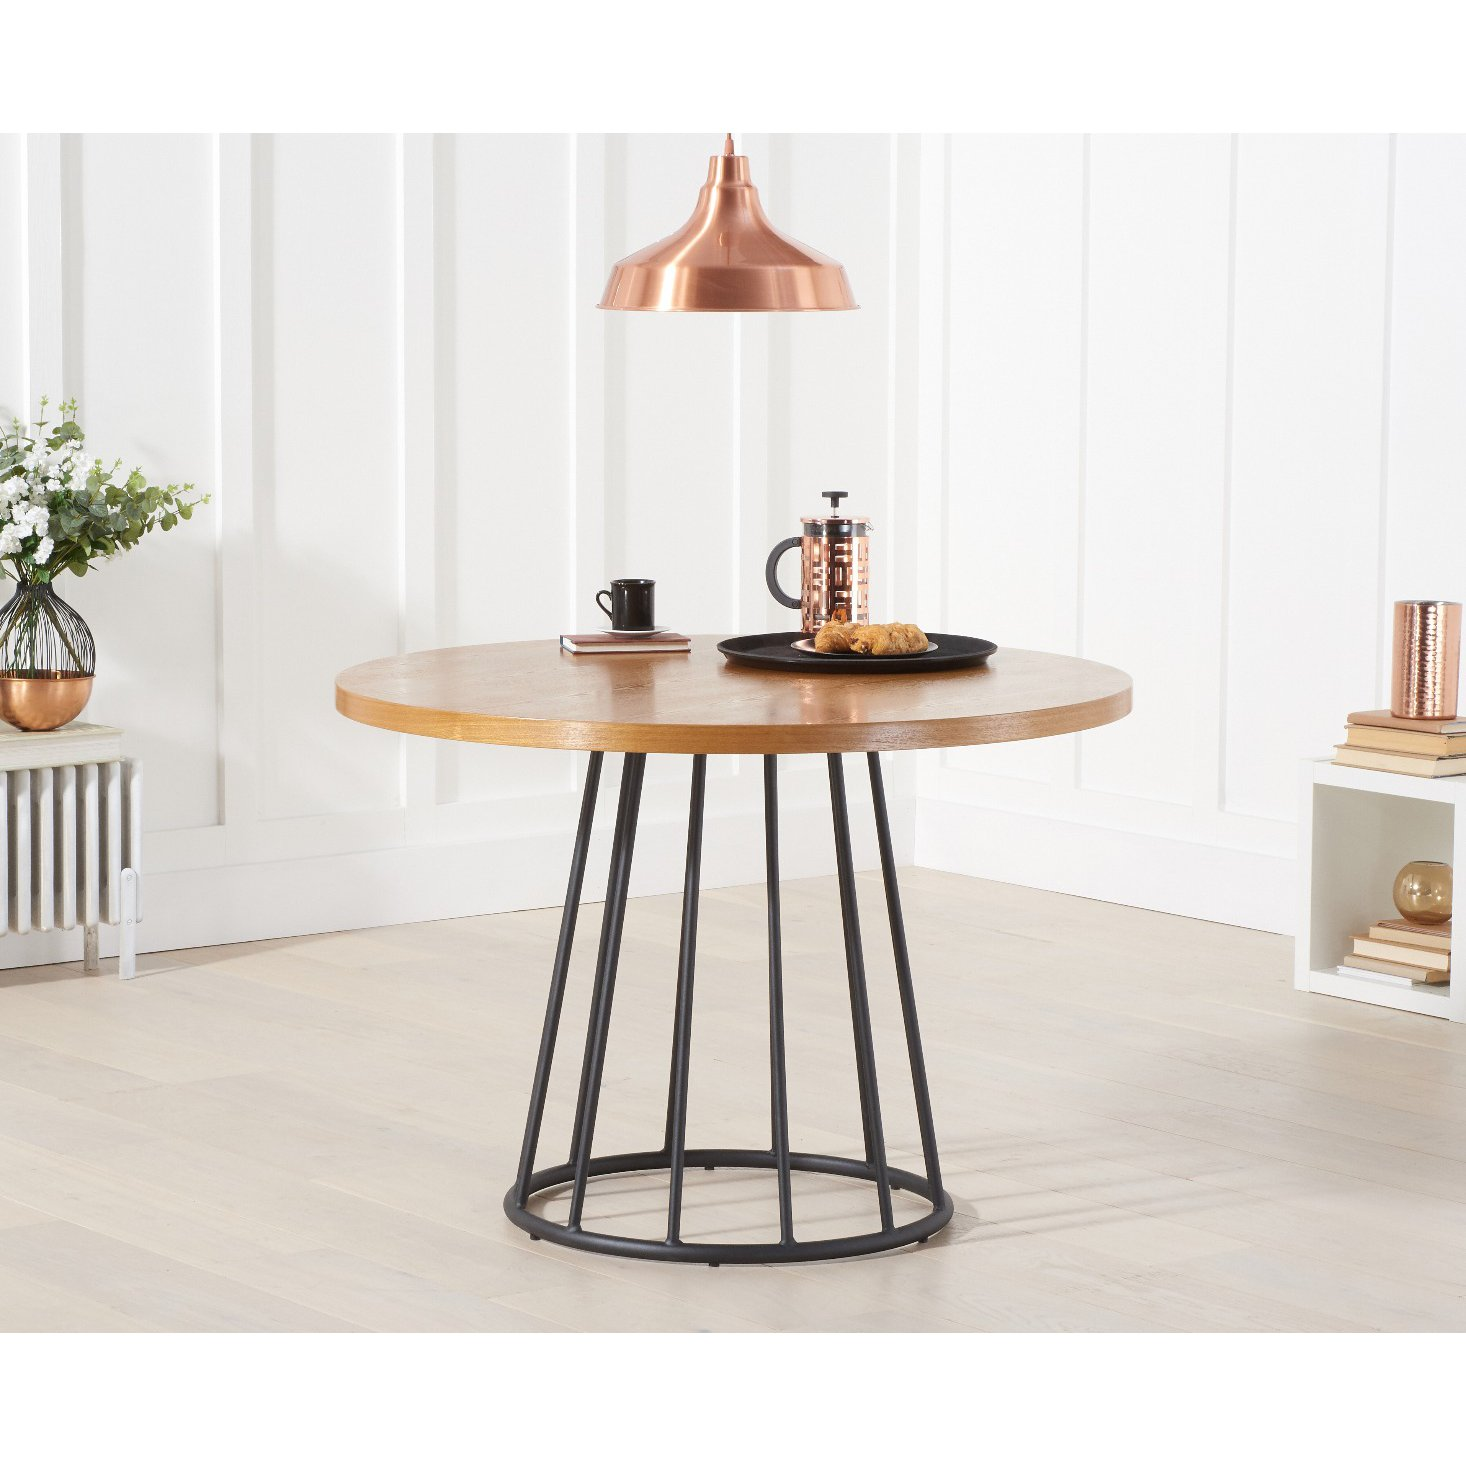 image-Hoxton 110cm Ash and Veneer Round Dining Table